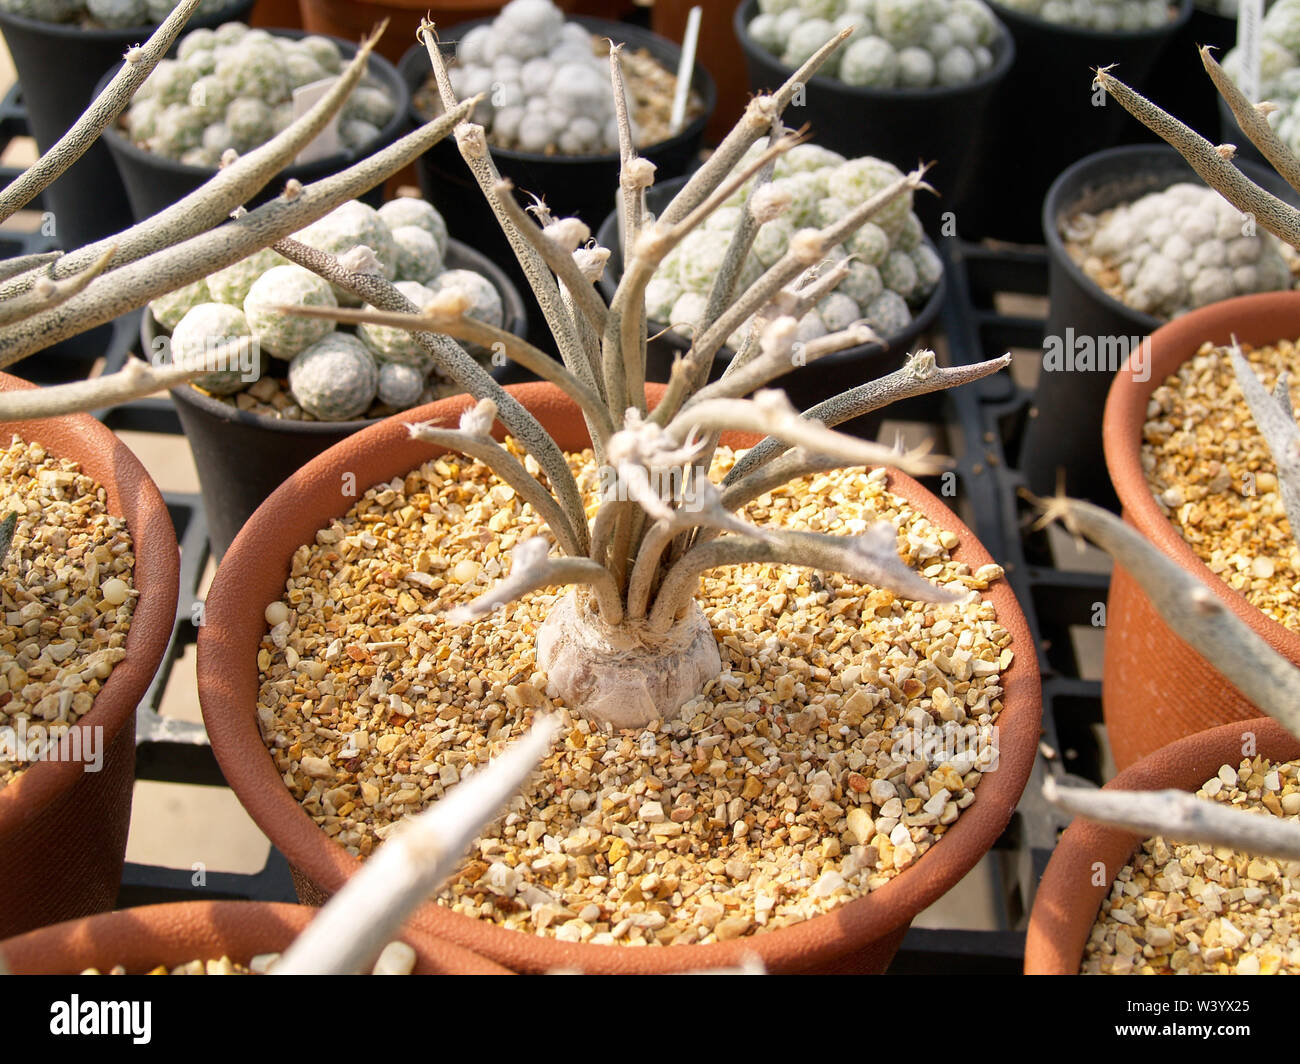 Small trees that grow out of shoots that are in brown plant pots and have small stones in plant pots - Stock Image